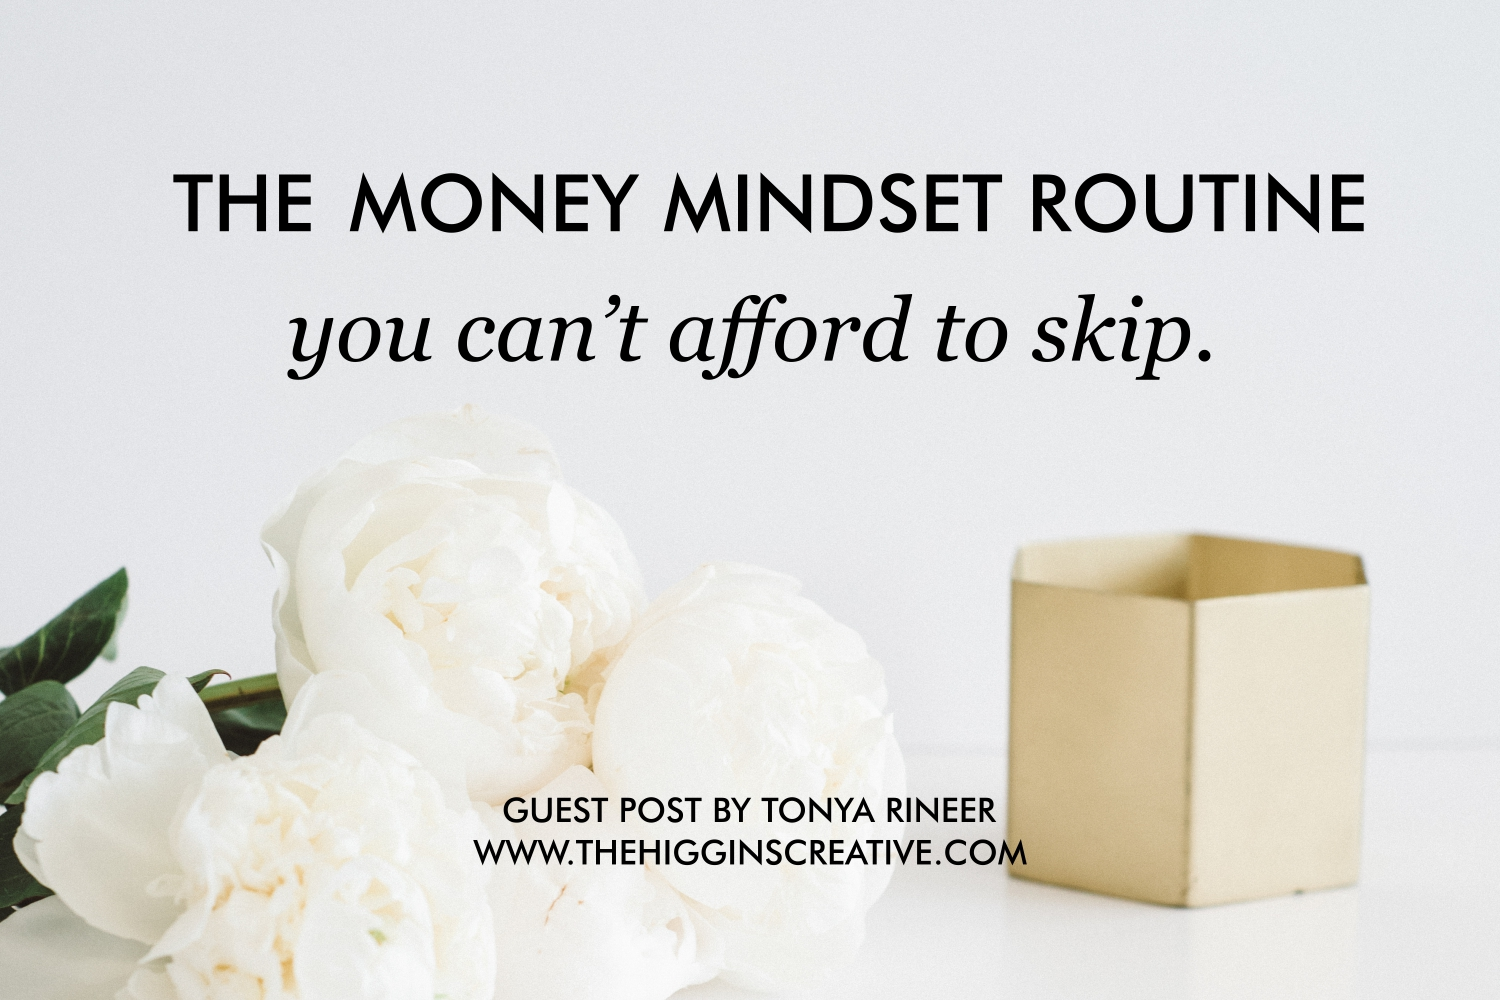 The Money Mindset Routine You Can't Afford to Skip by Tonya Rineer (money mindset coach) on The Higgins Creative Blog for entrepreneurs, makers and creatives.